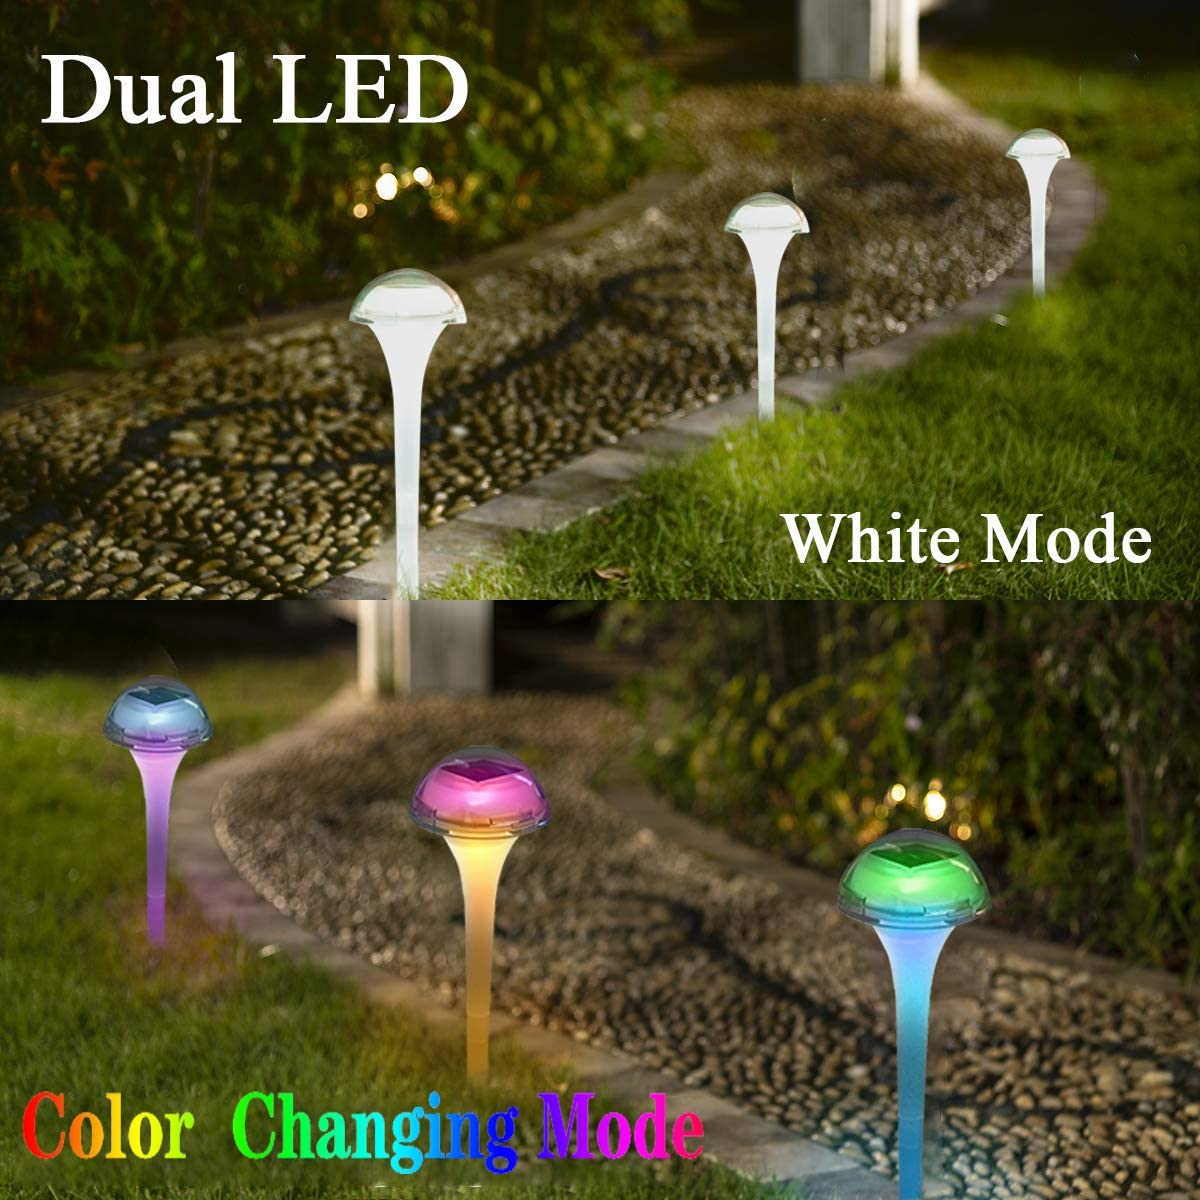 6pack-mushroom pearlstar Solar Lights Outdoor Garden Pathway Lights LED Landscape Lighting Waterproof for Path Lawn Patio Yard Walkway Driveway,4 LED Bulbs/& 2 Lights Effect,White/&Color Changing Light